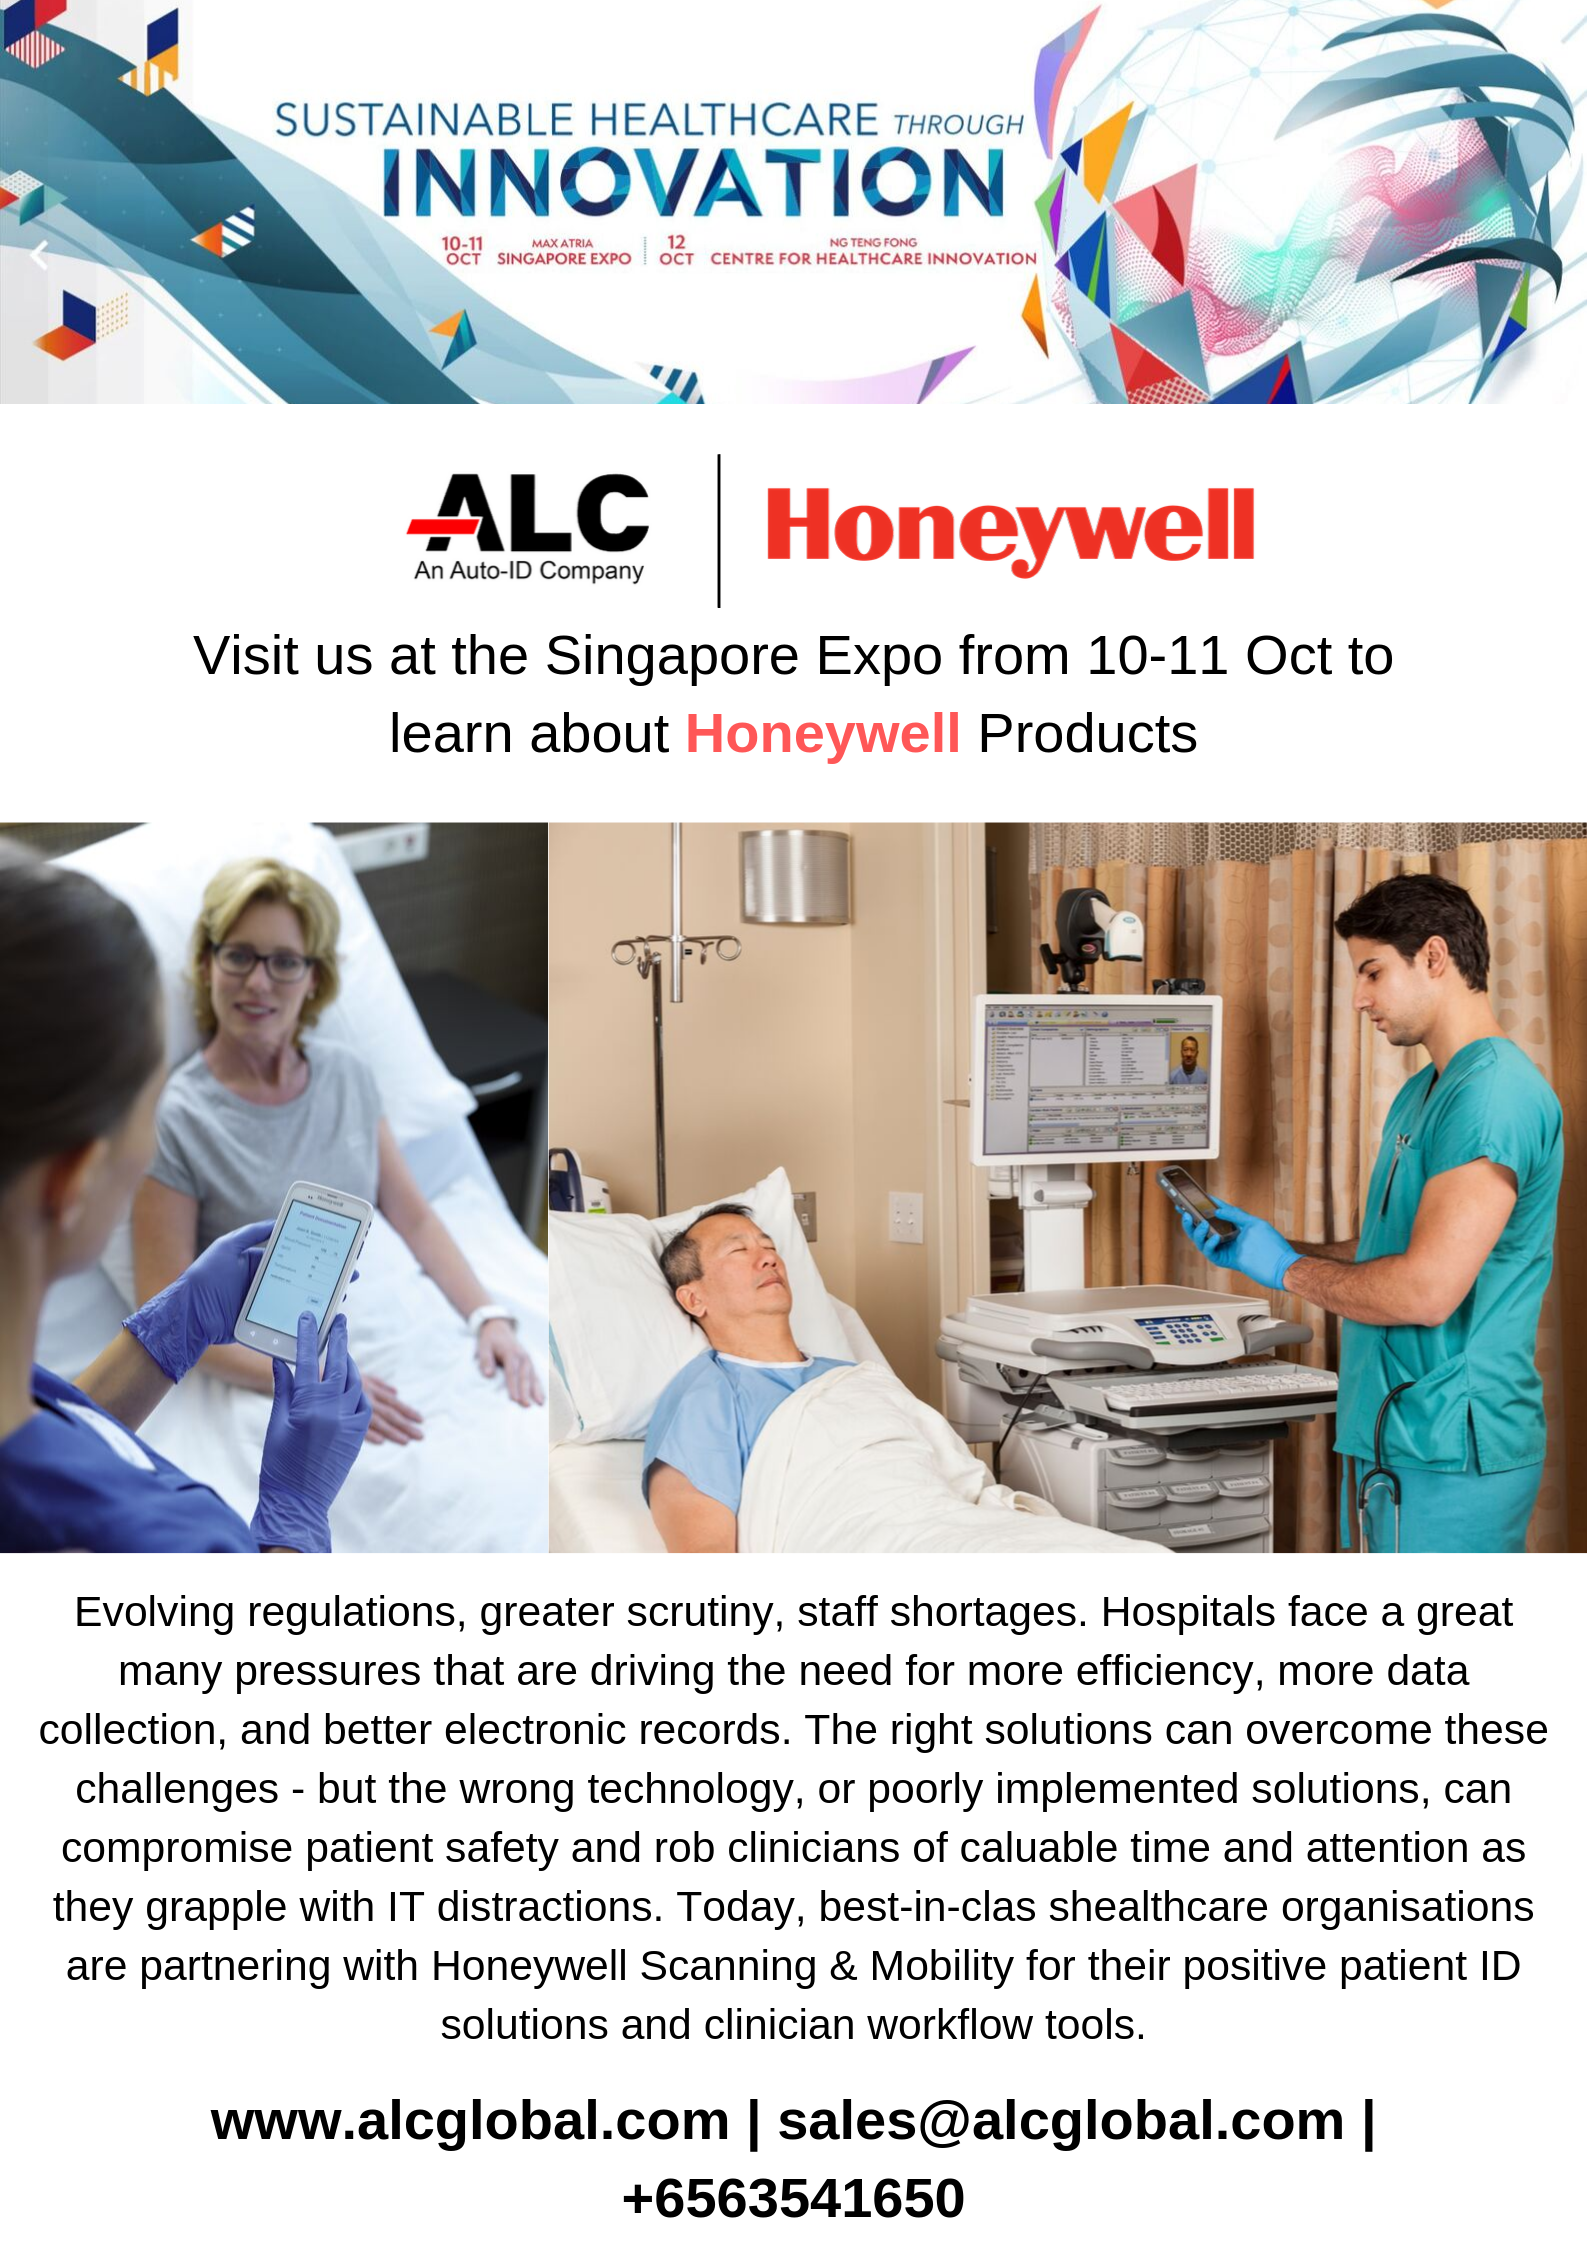 Visit us at the Singapore Health & Biomedical Congress 2019!